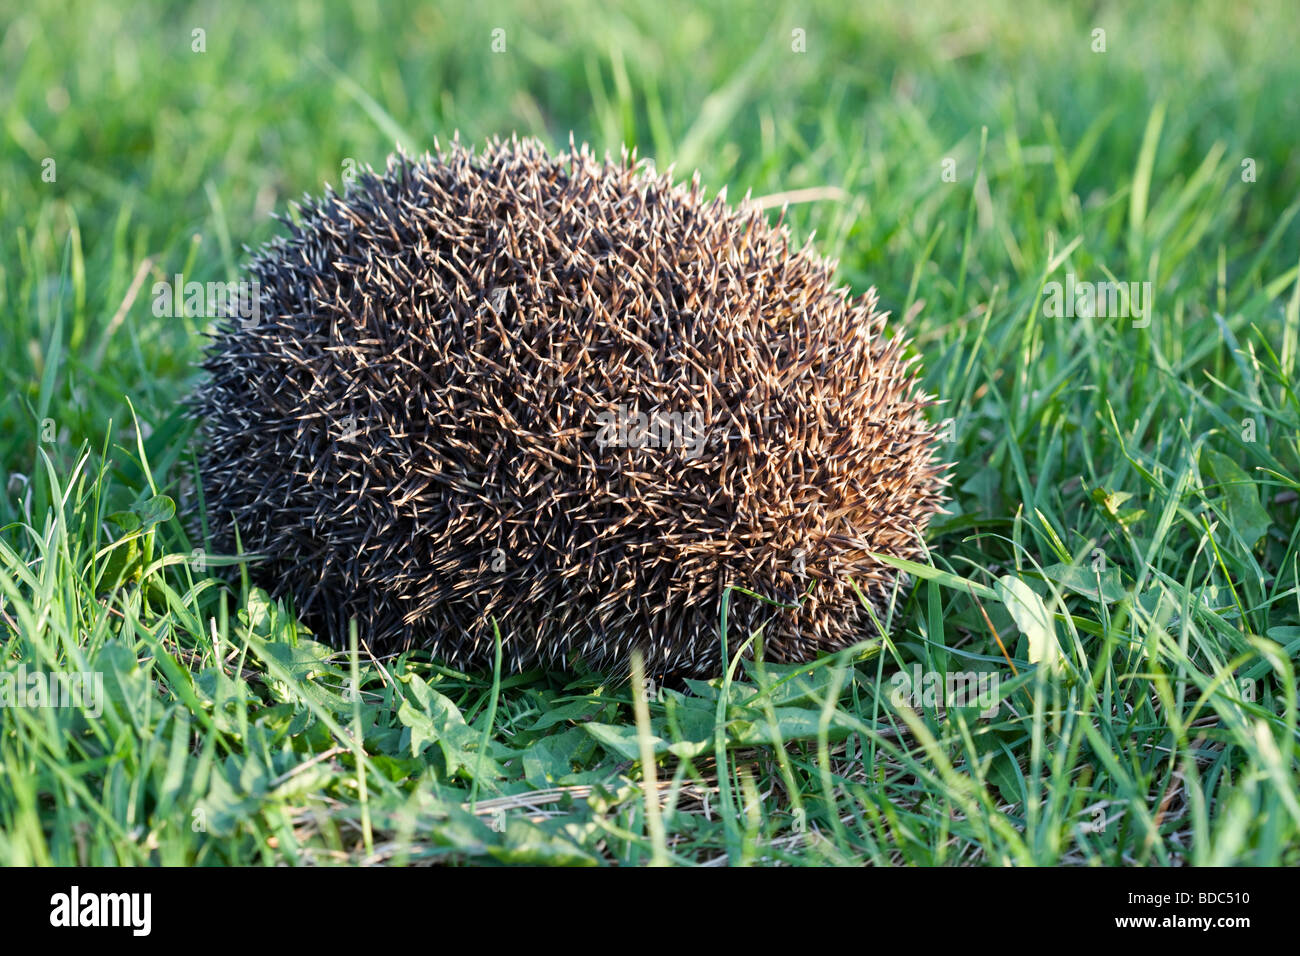 Hedgehog is nocturnal, and if alarmed will roll itself into a ball - Stock Image